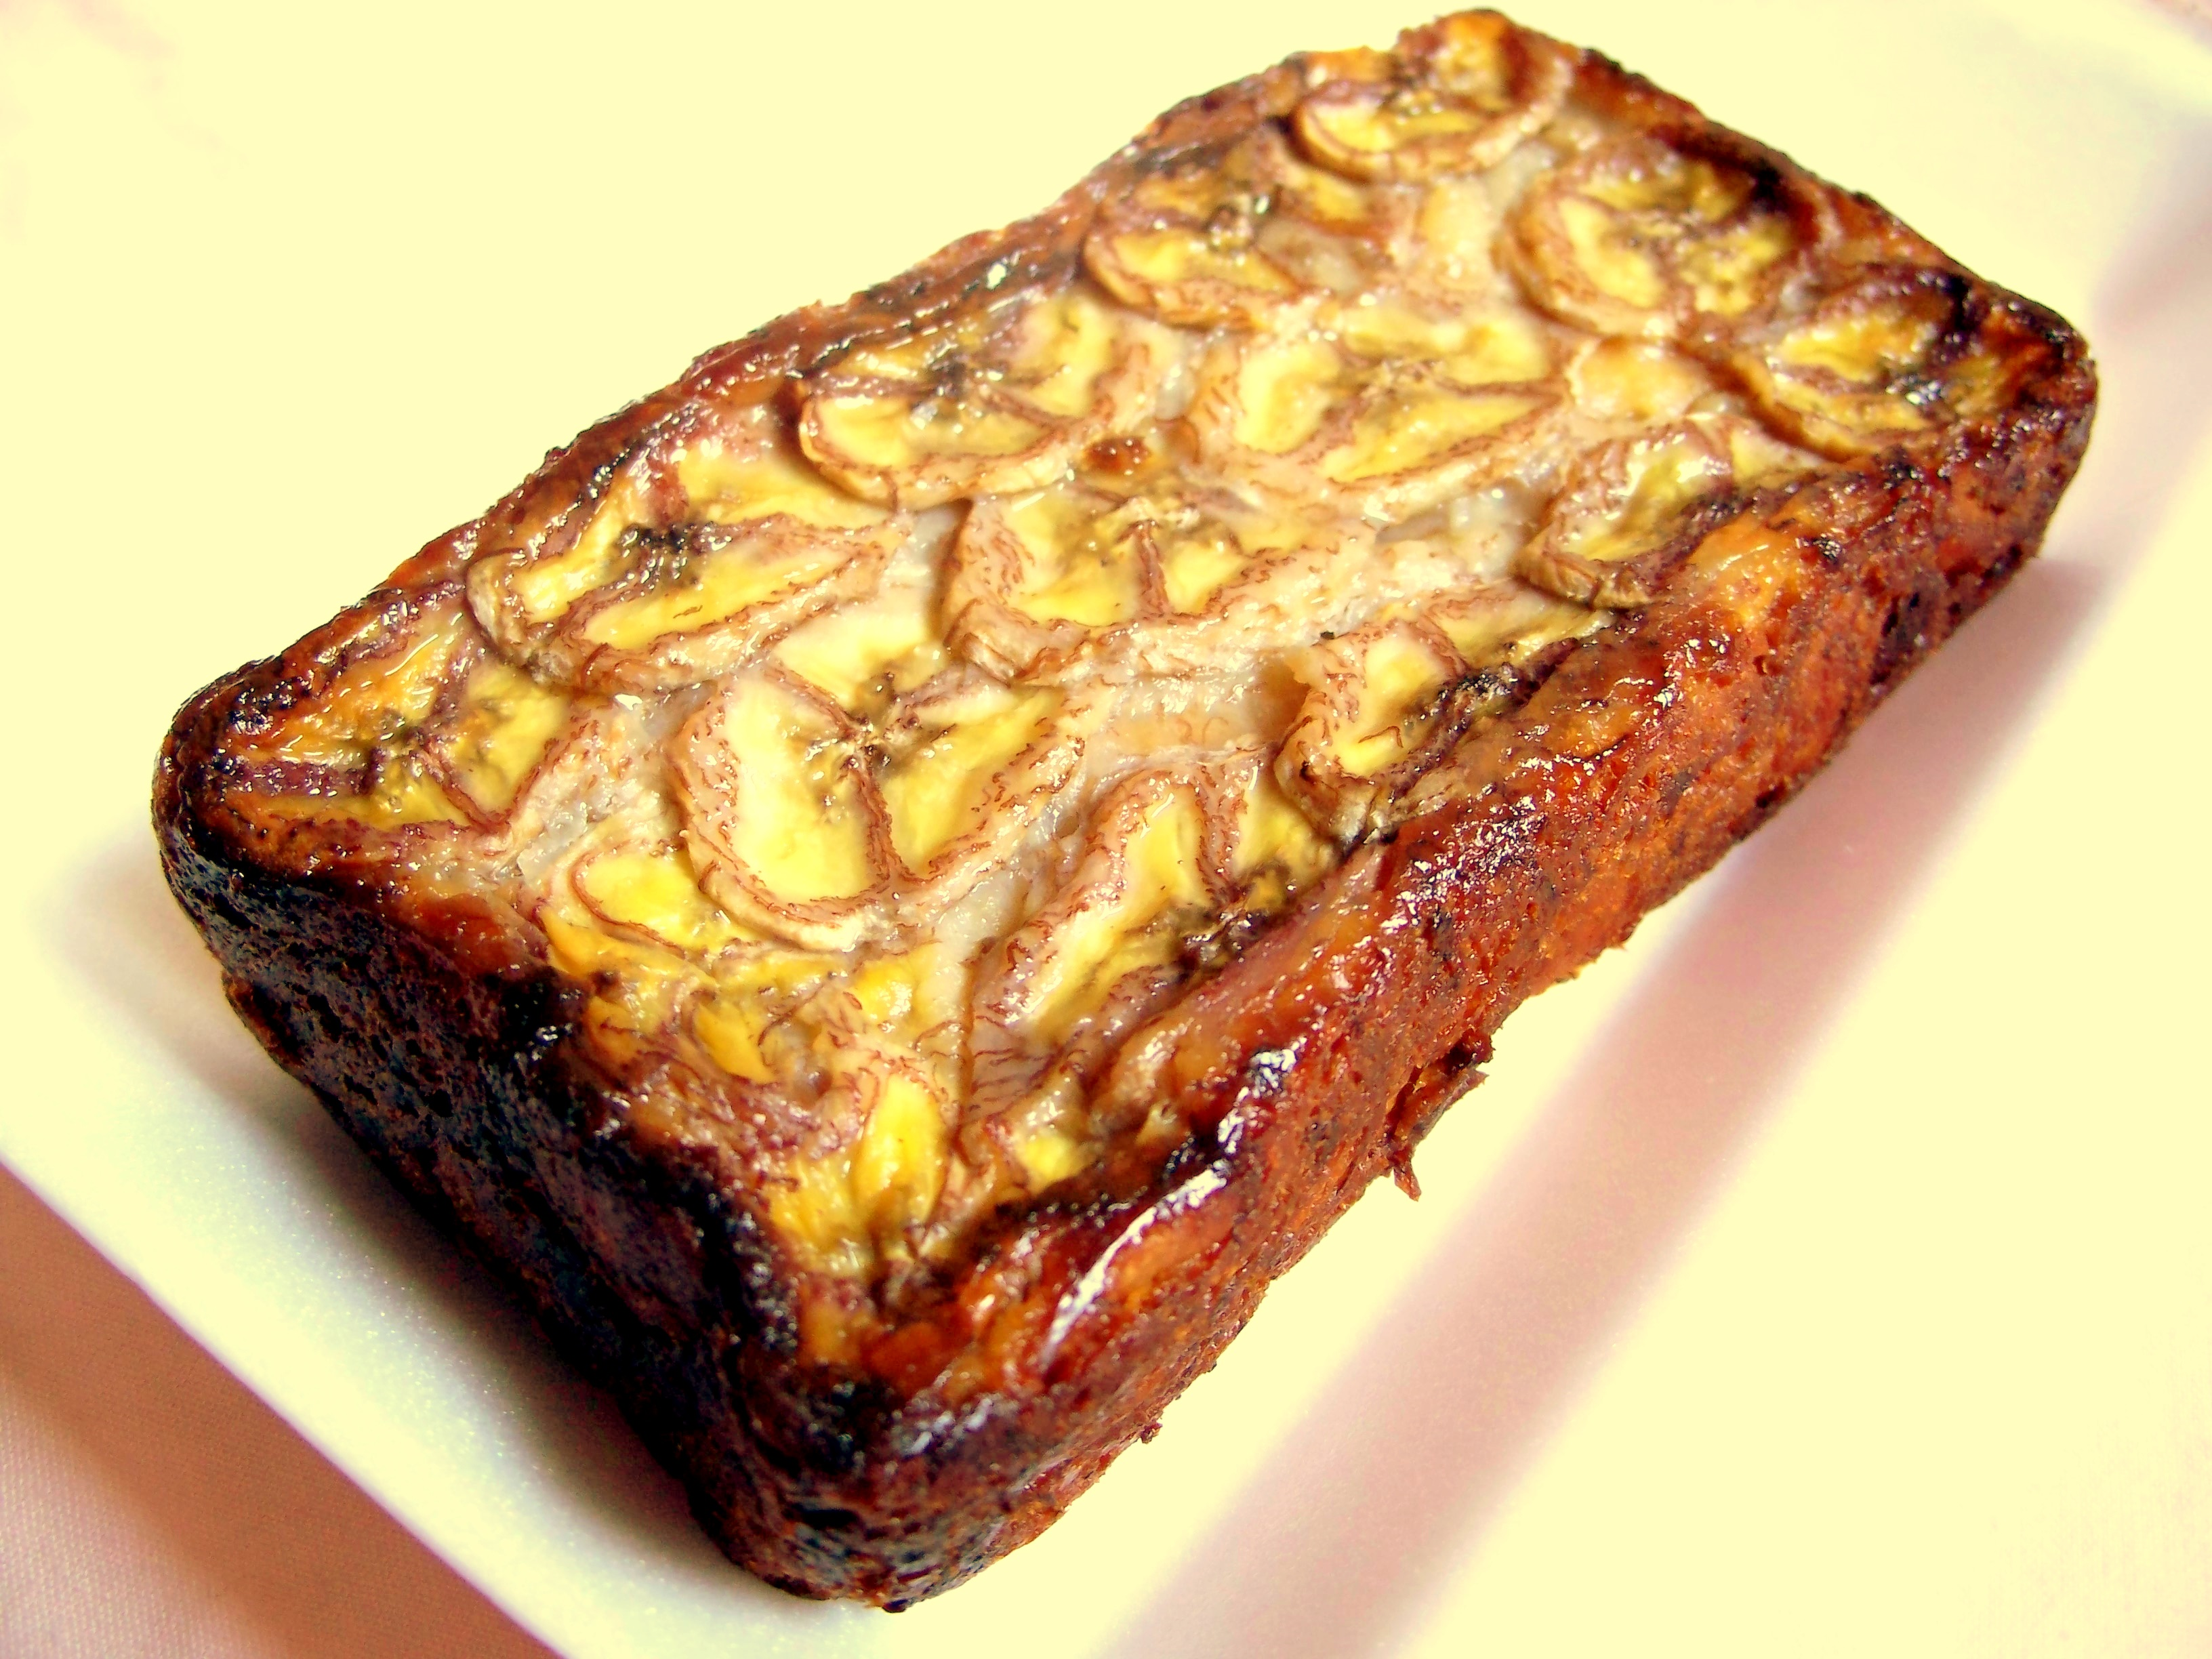 Best Banana Cake Recipe Freezer